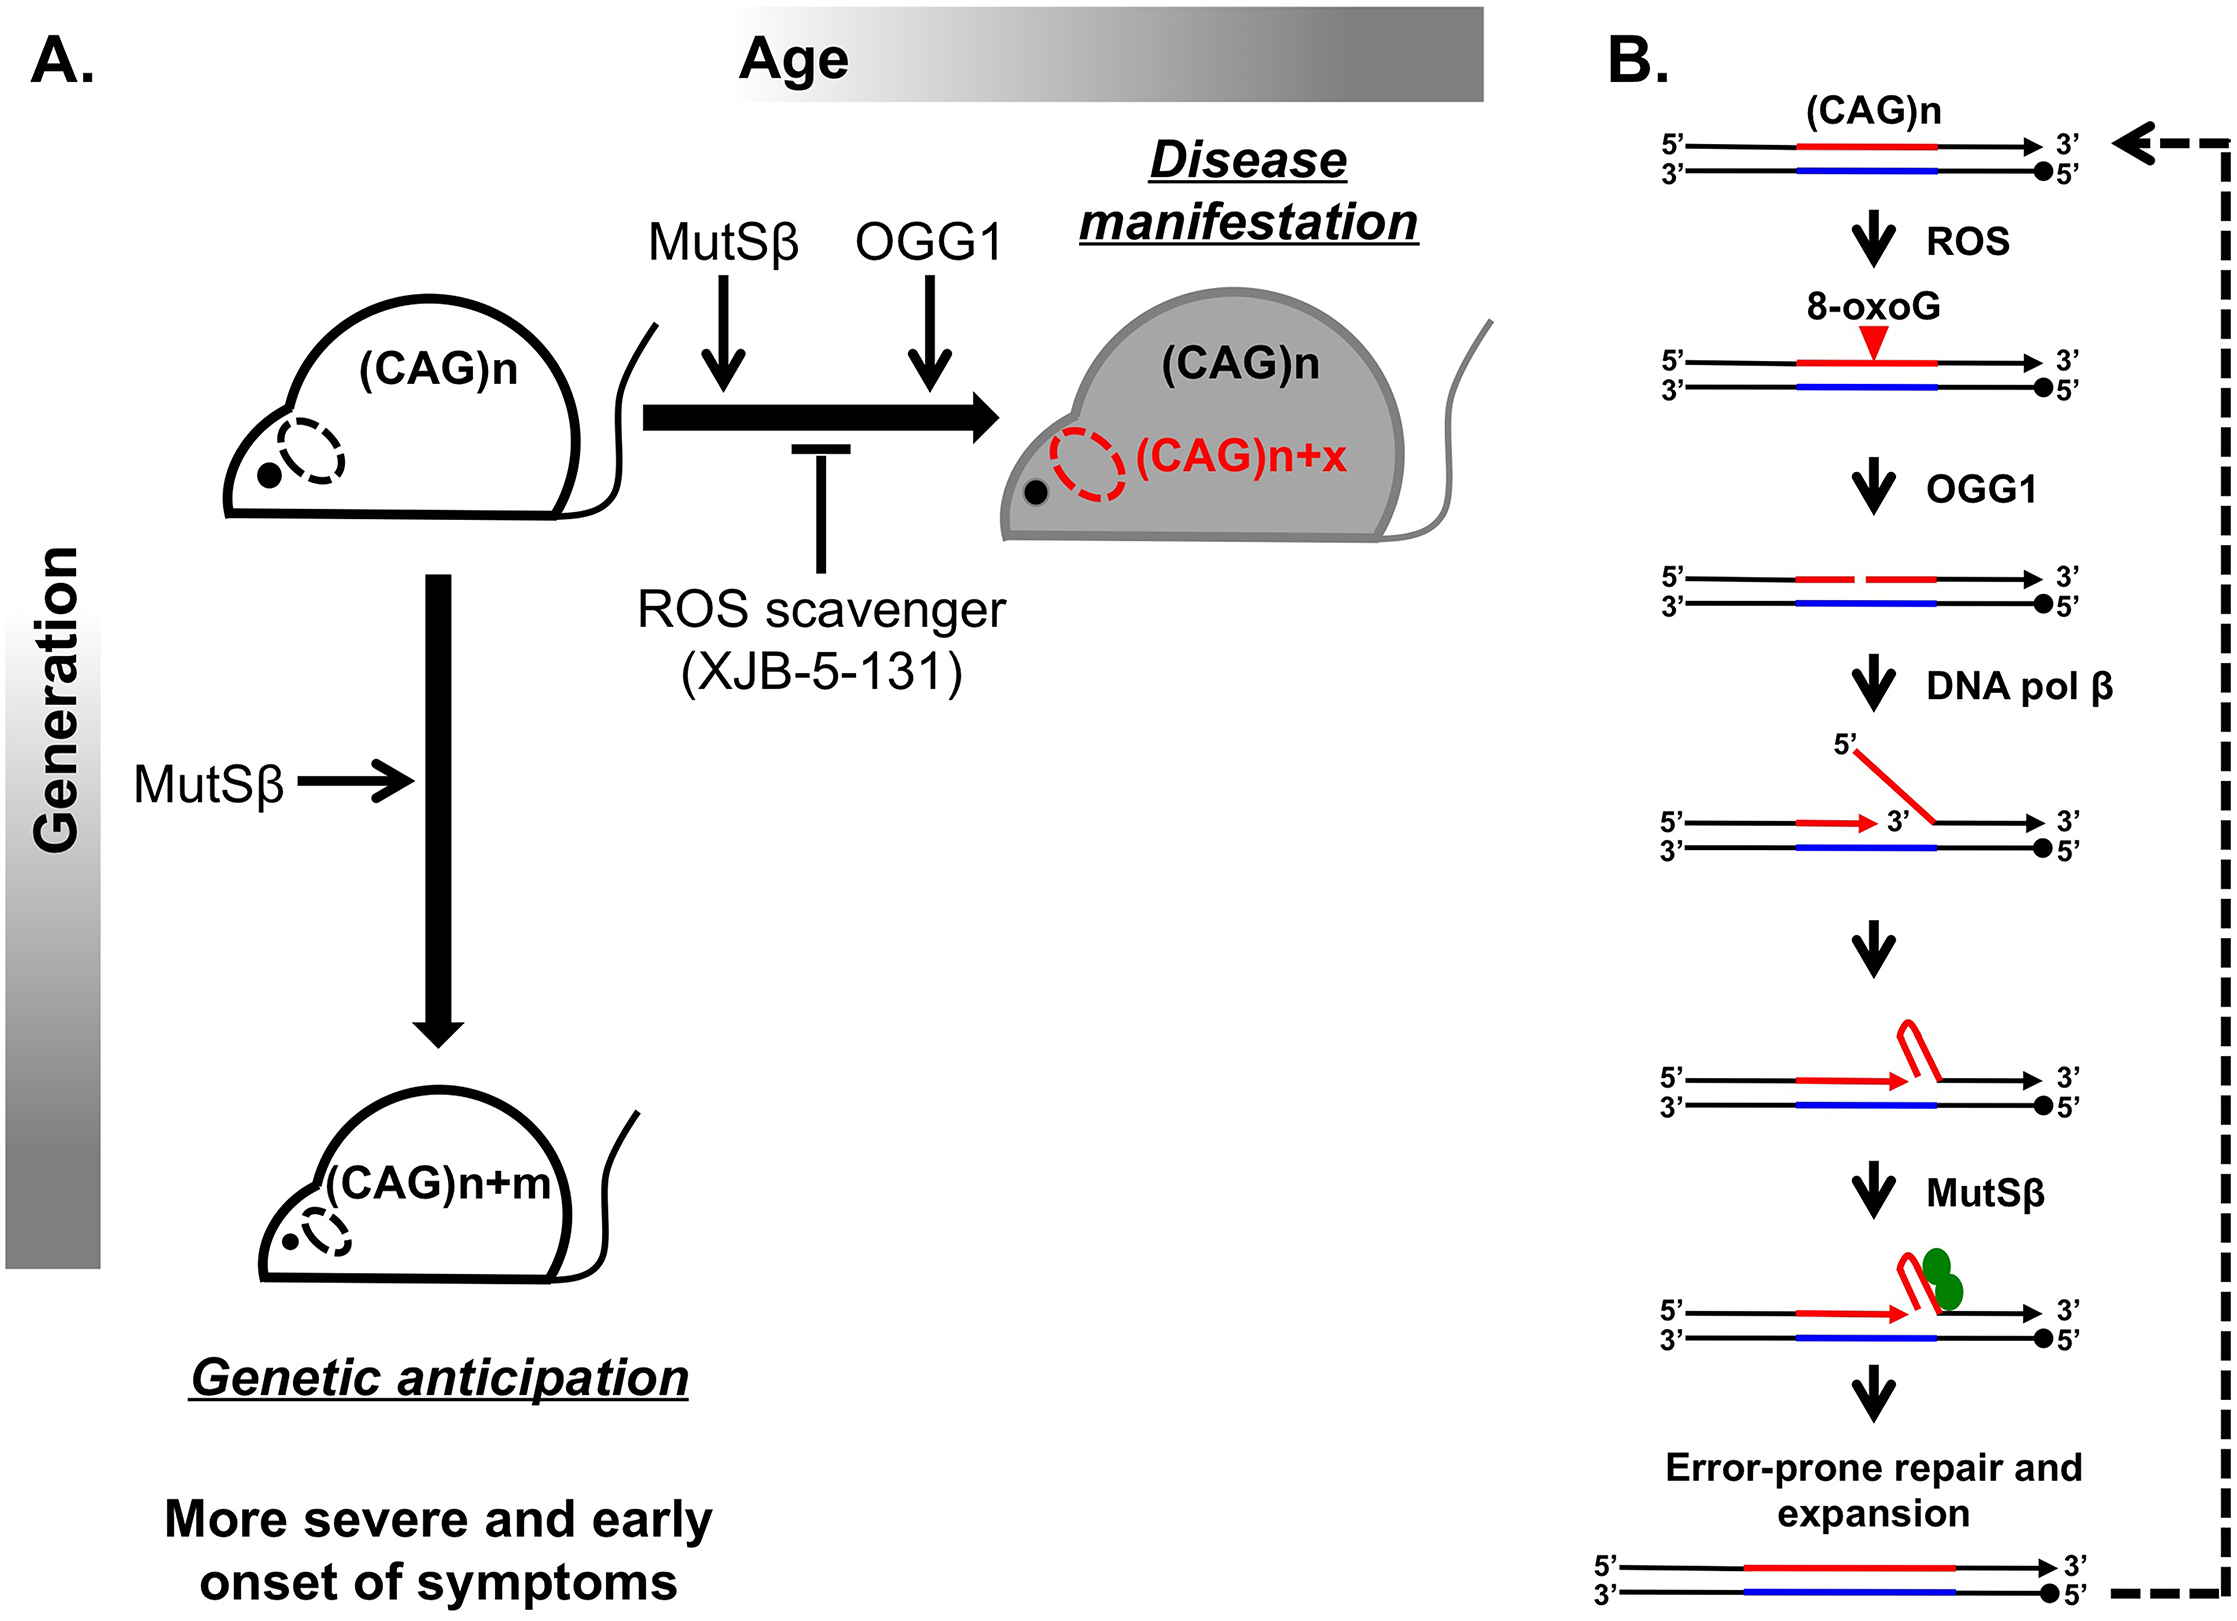 Inhibiting somatic expansions delays onset of disease in a Huntington mouse model.